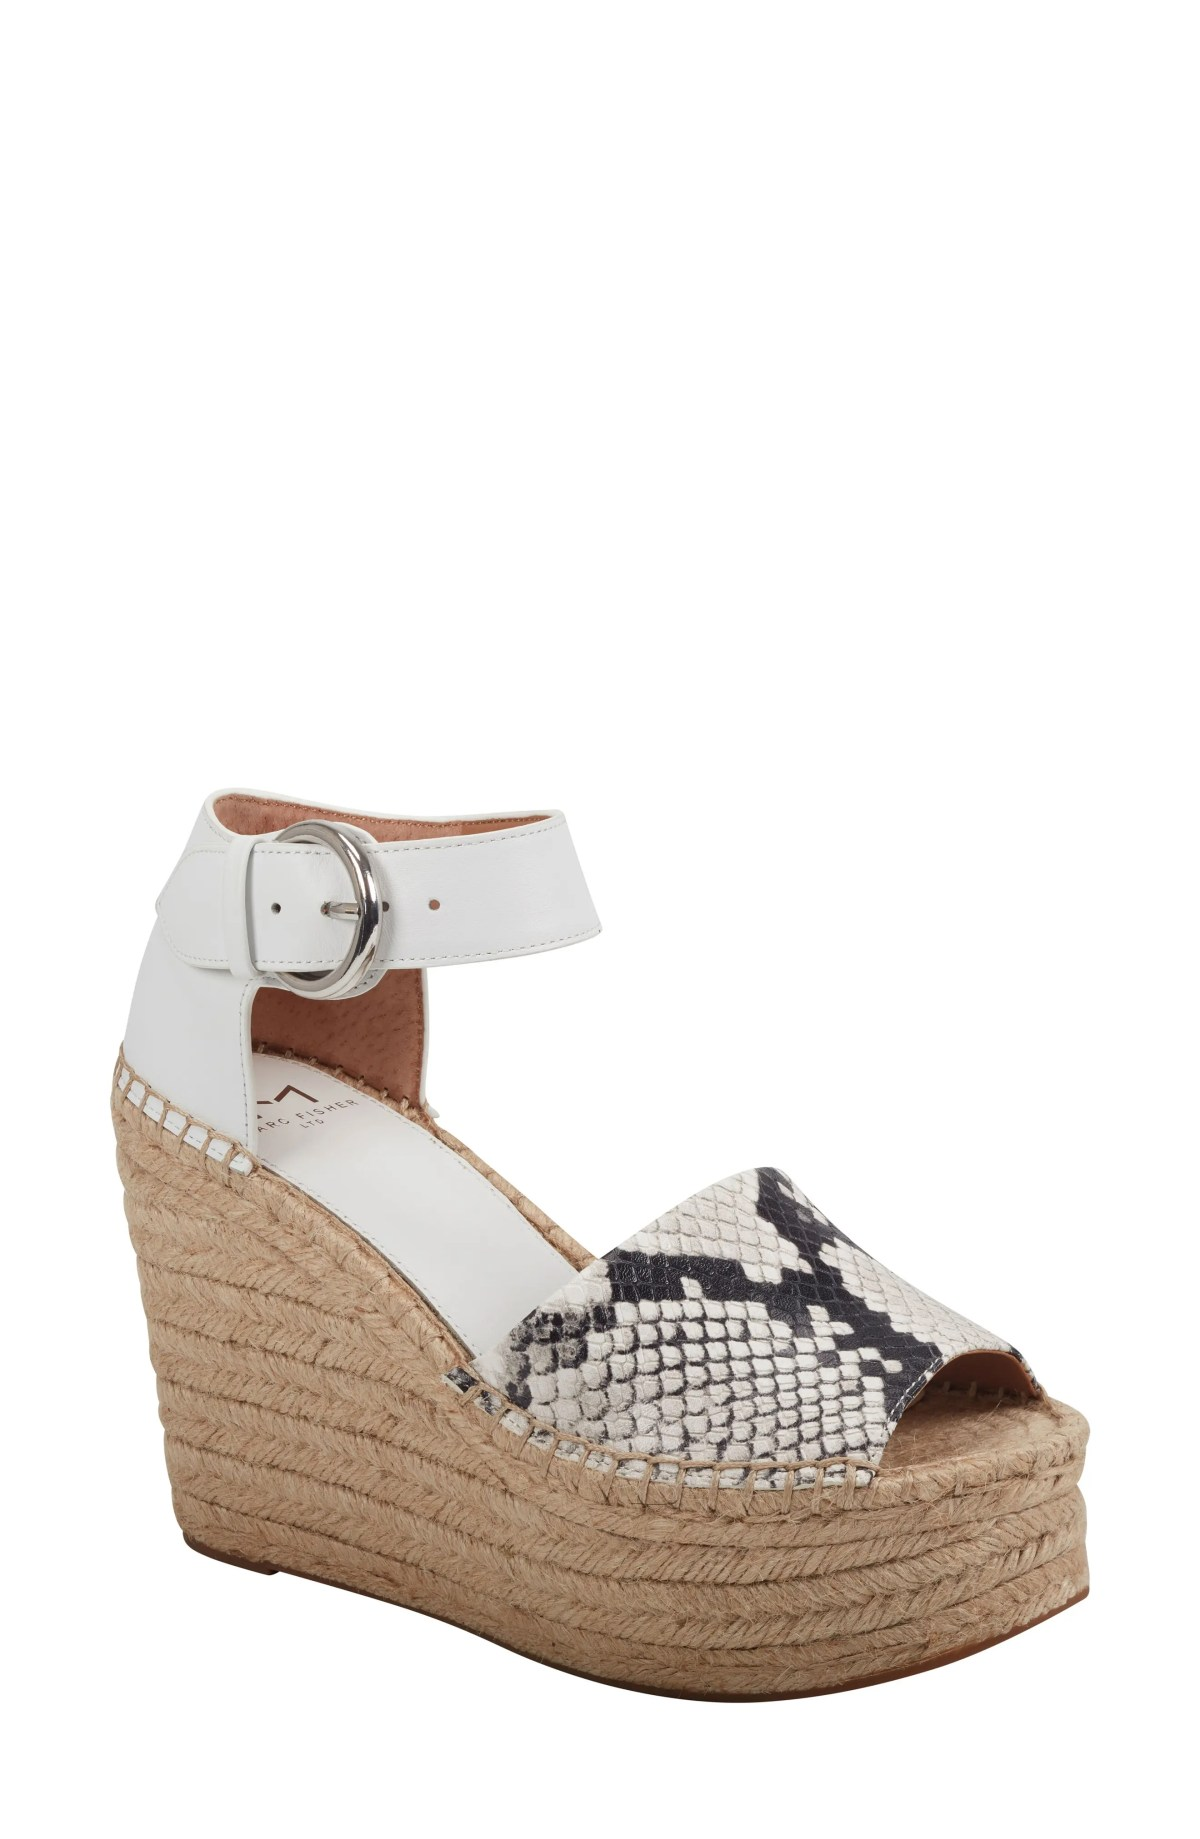 MARC FISHER LTD Alida Espadrille Platform Wedge, Main, color, SNAKE PRINT LEATHER